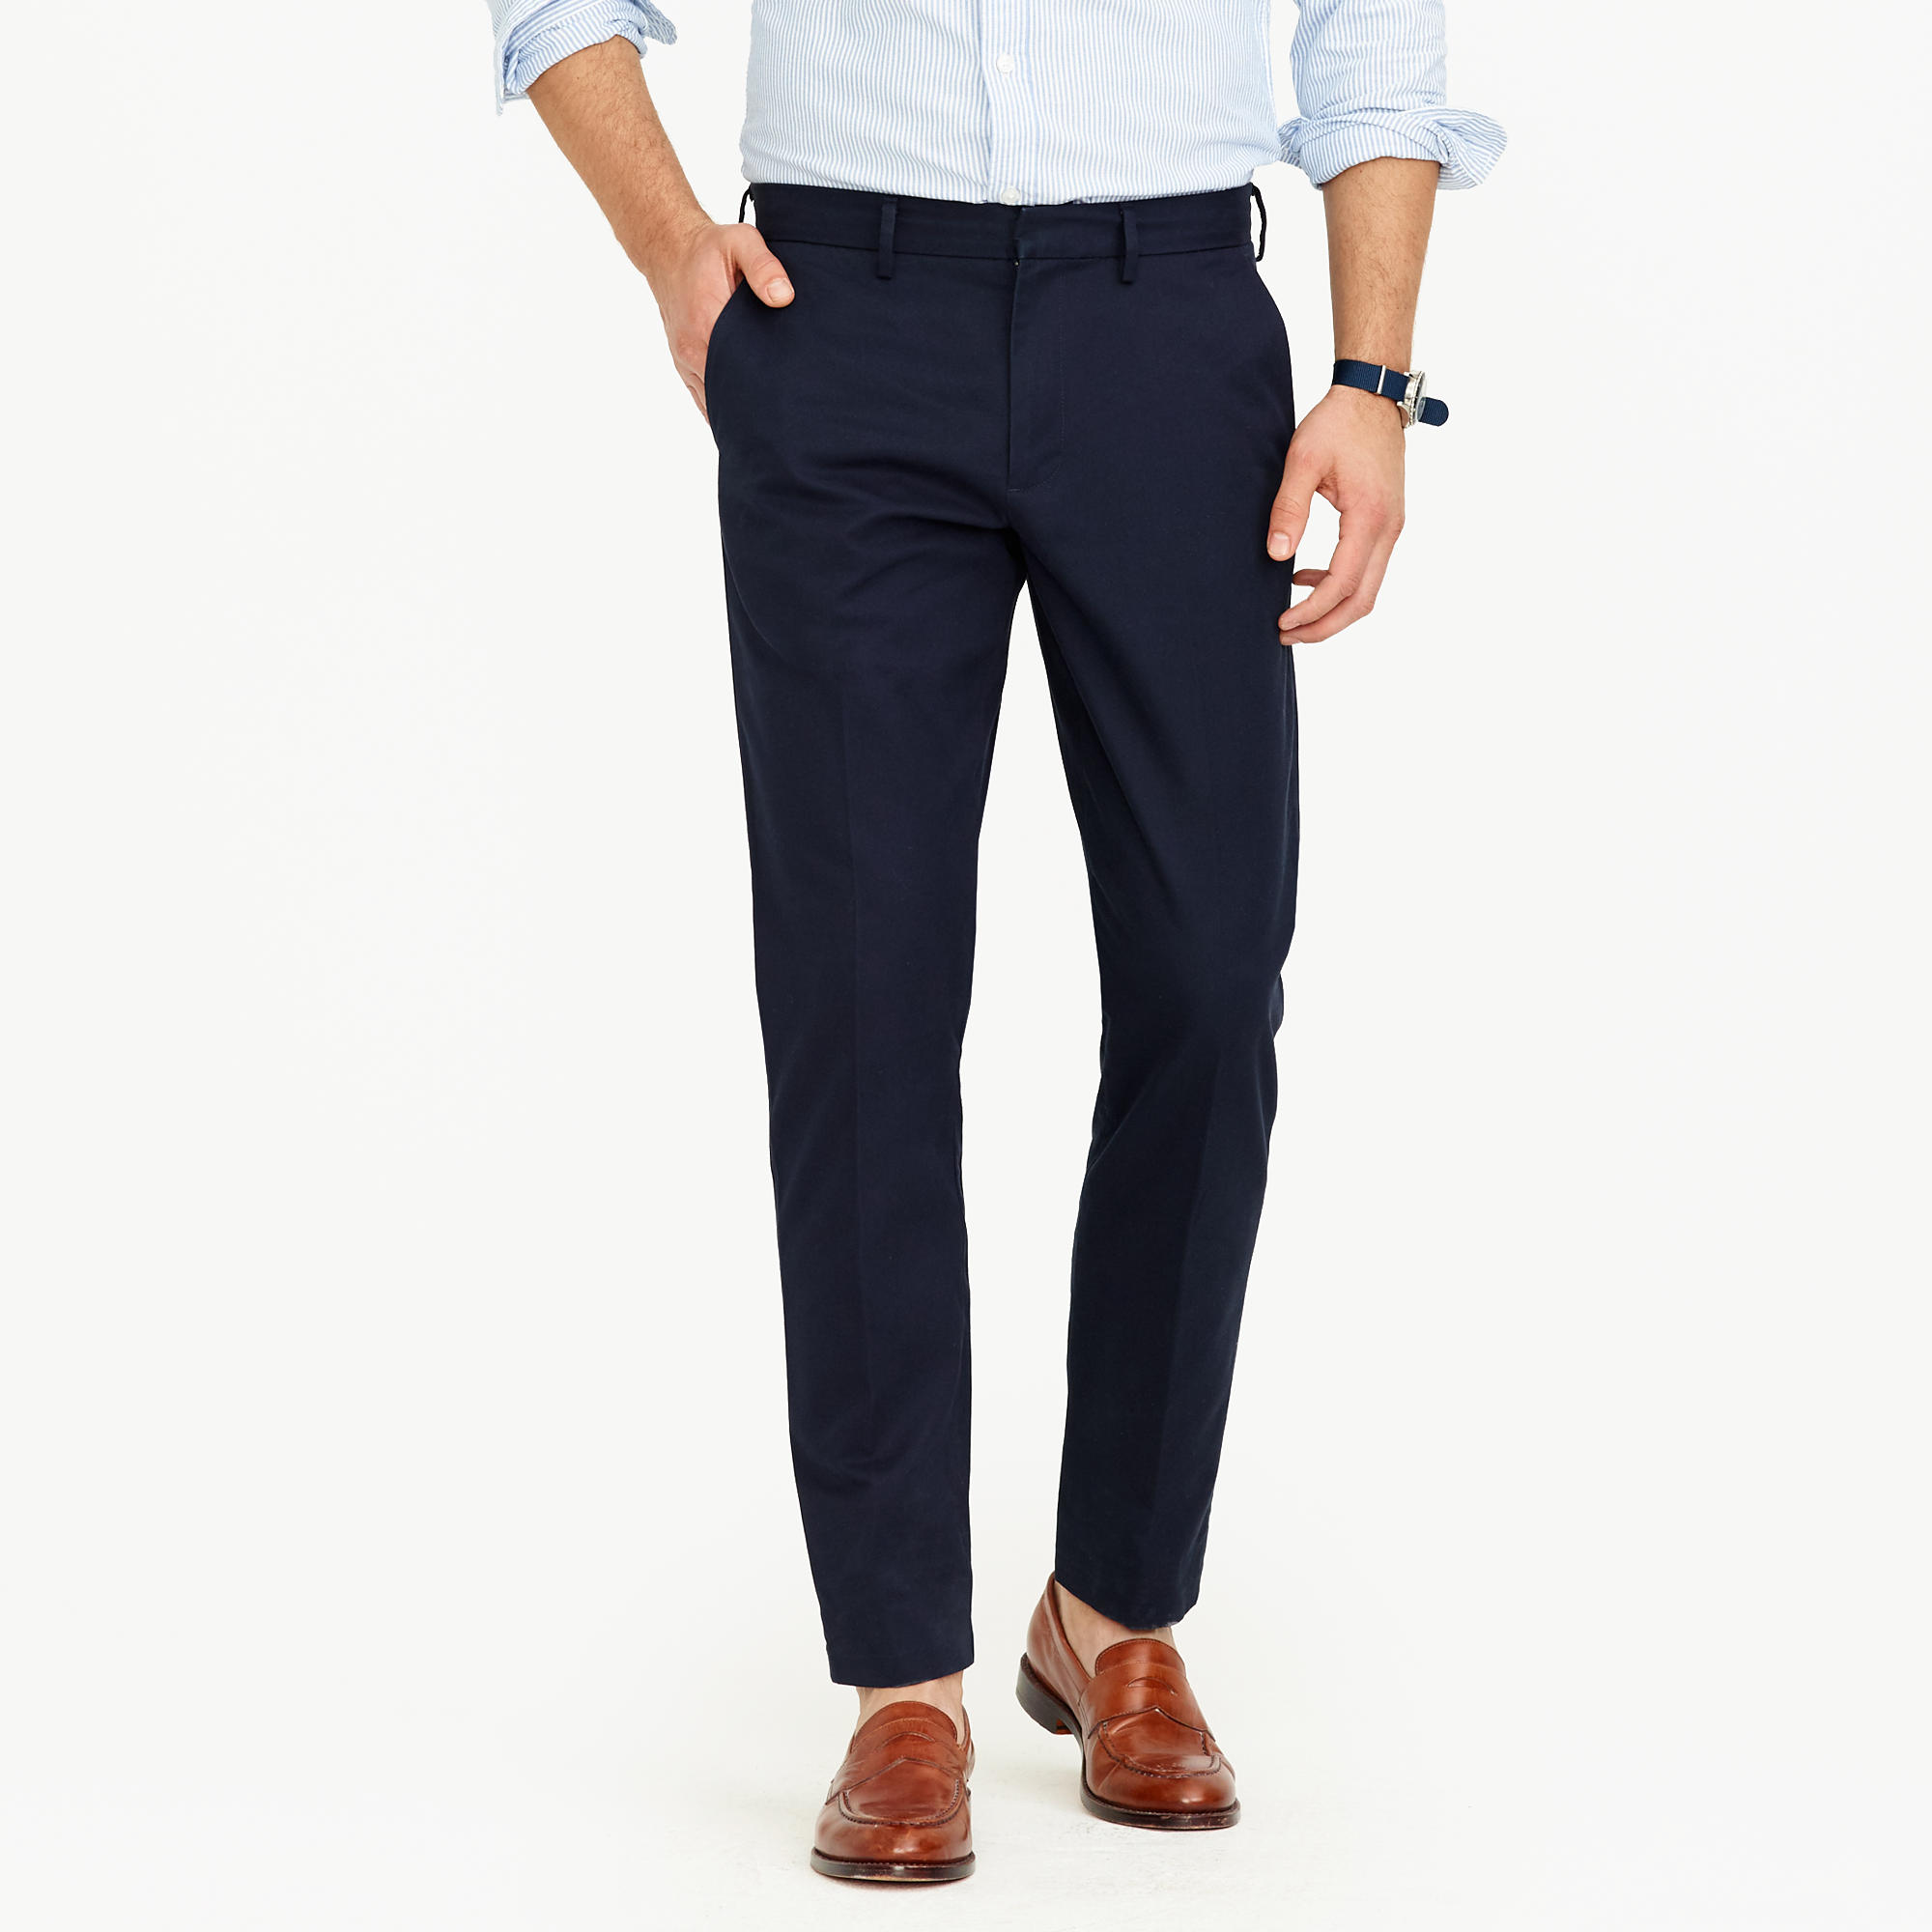 Best place to buy dress pants